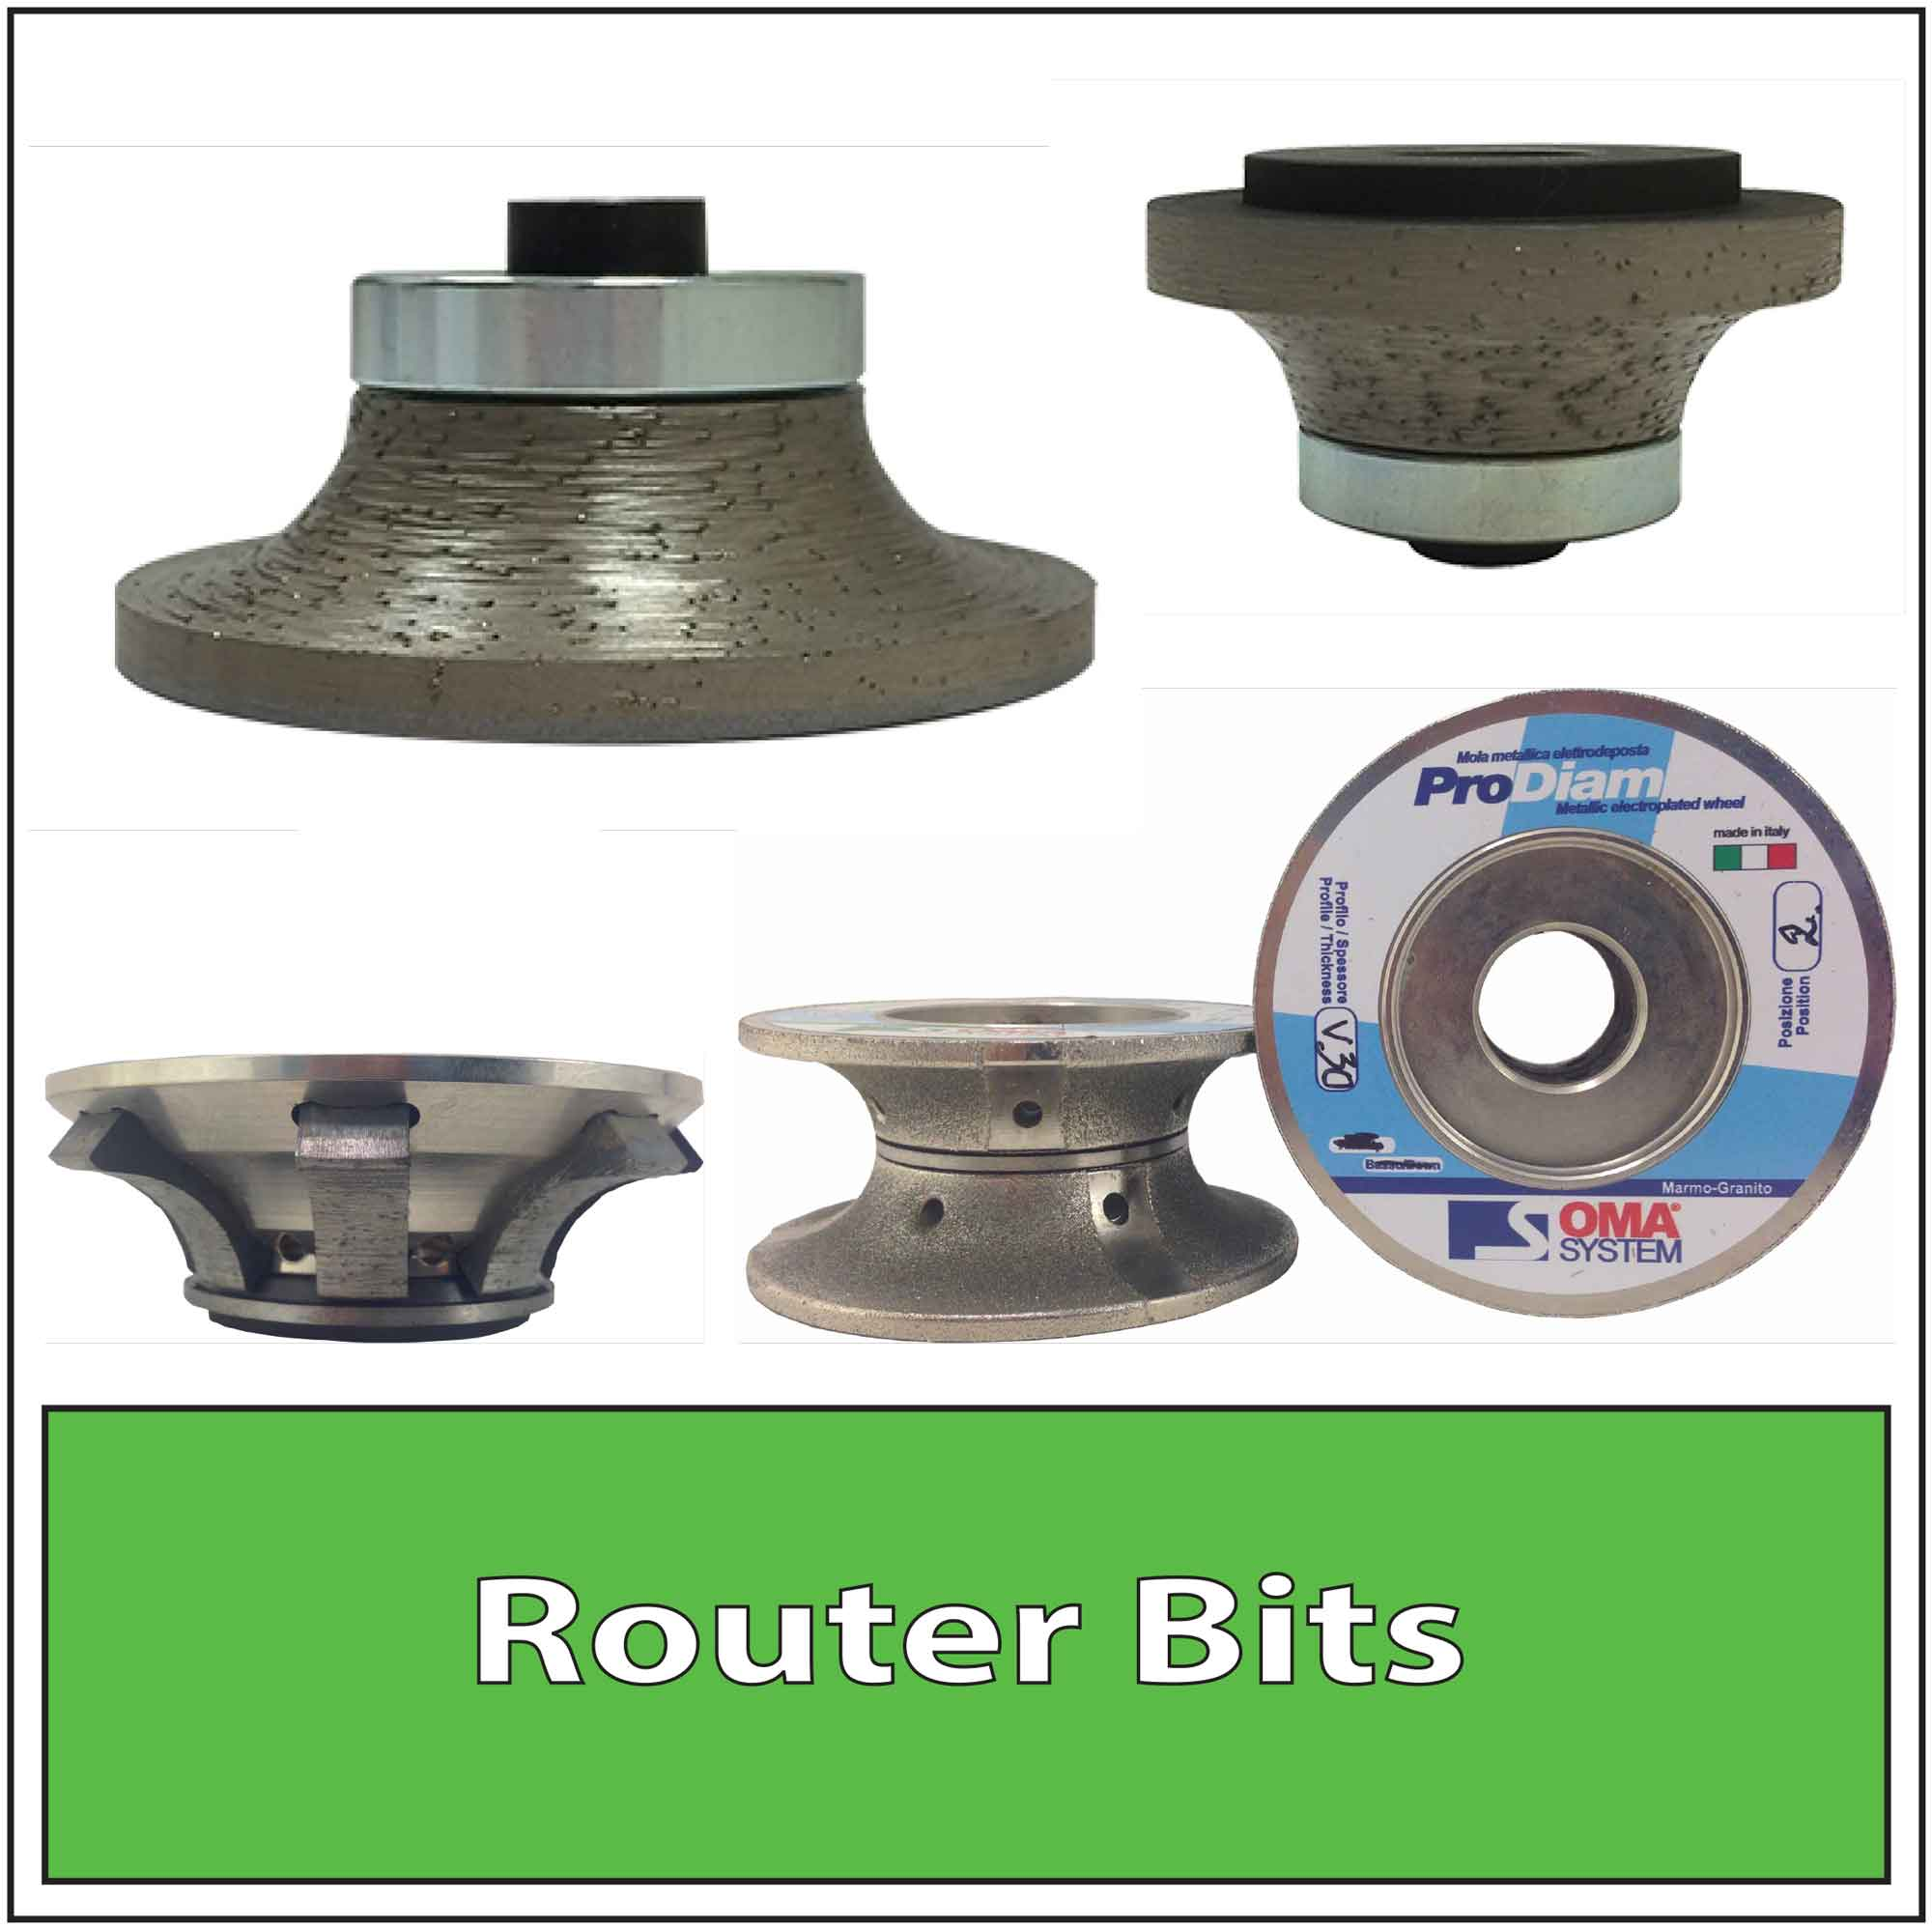 Granite Router Bits Stone Diamond Router Bits for Granite Fabrication